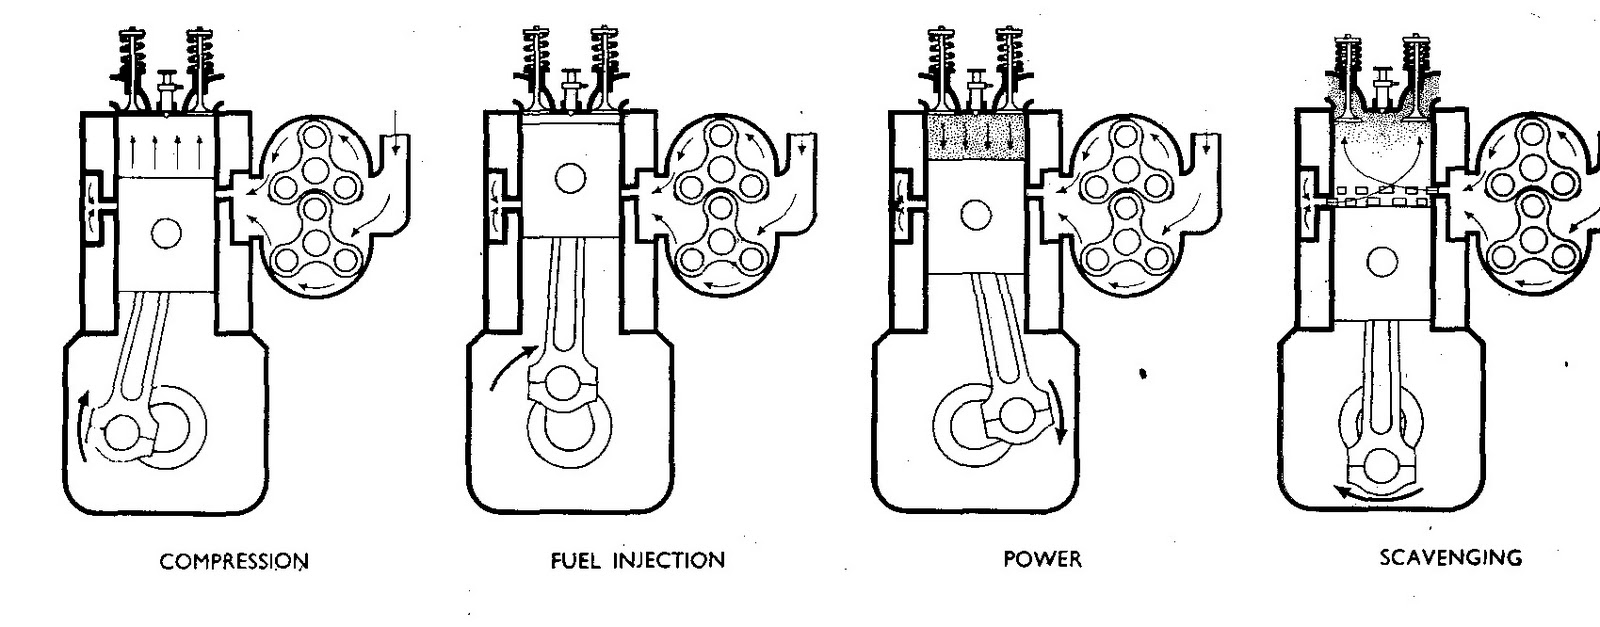 Utotech December 2011 2 Cycle Engine Diagram Wednesday 14 Two Stroke Tractor Engines